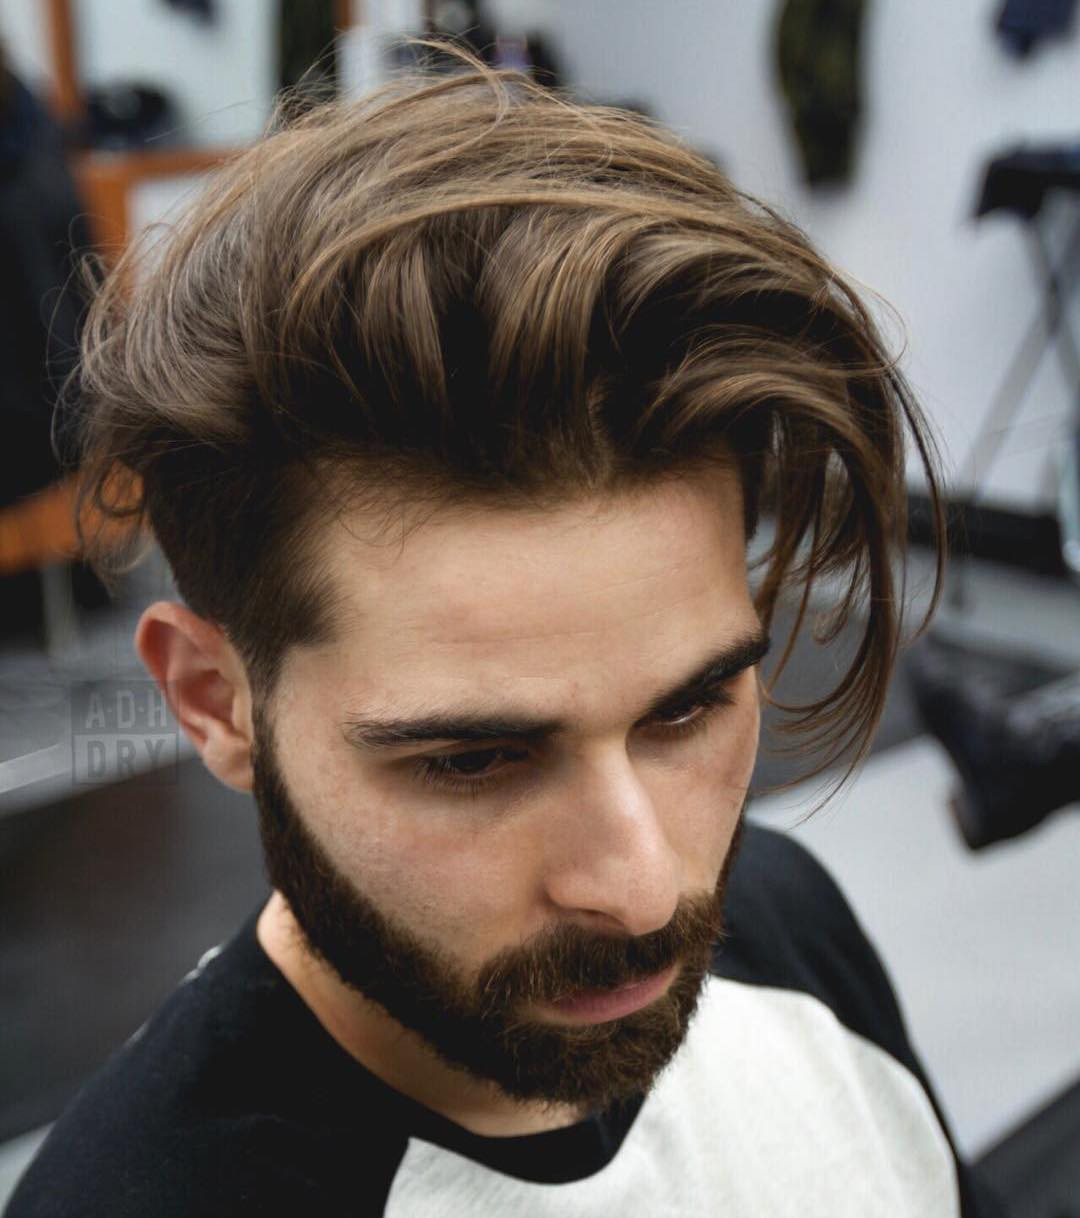 Best ideas about Male Undercut Hairstyle . Save or Pin Barber Shops Near Me Map Now.